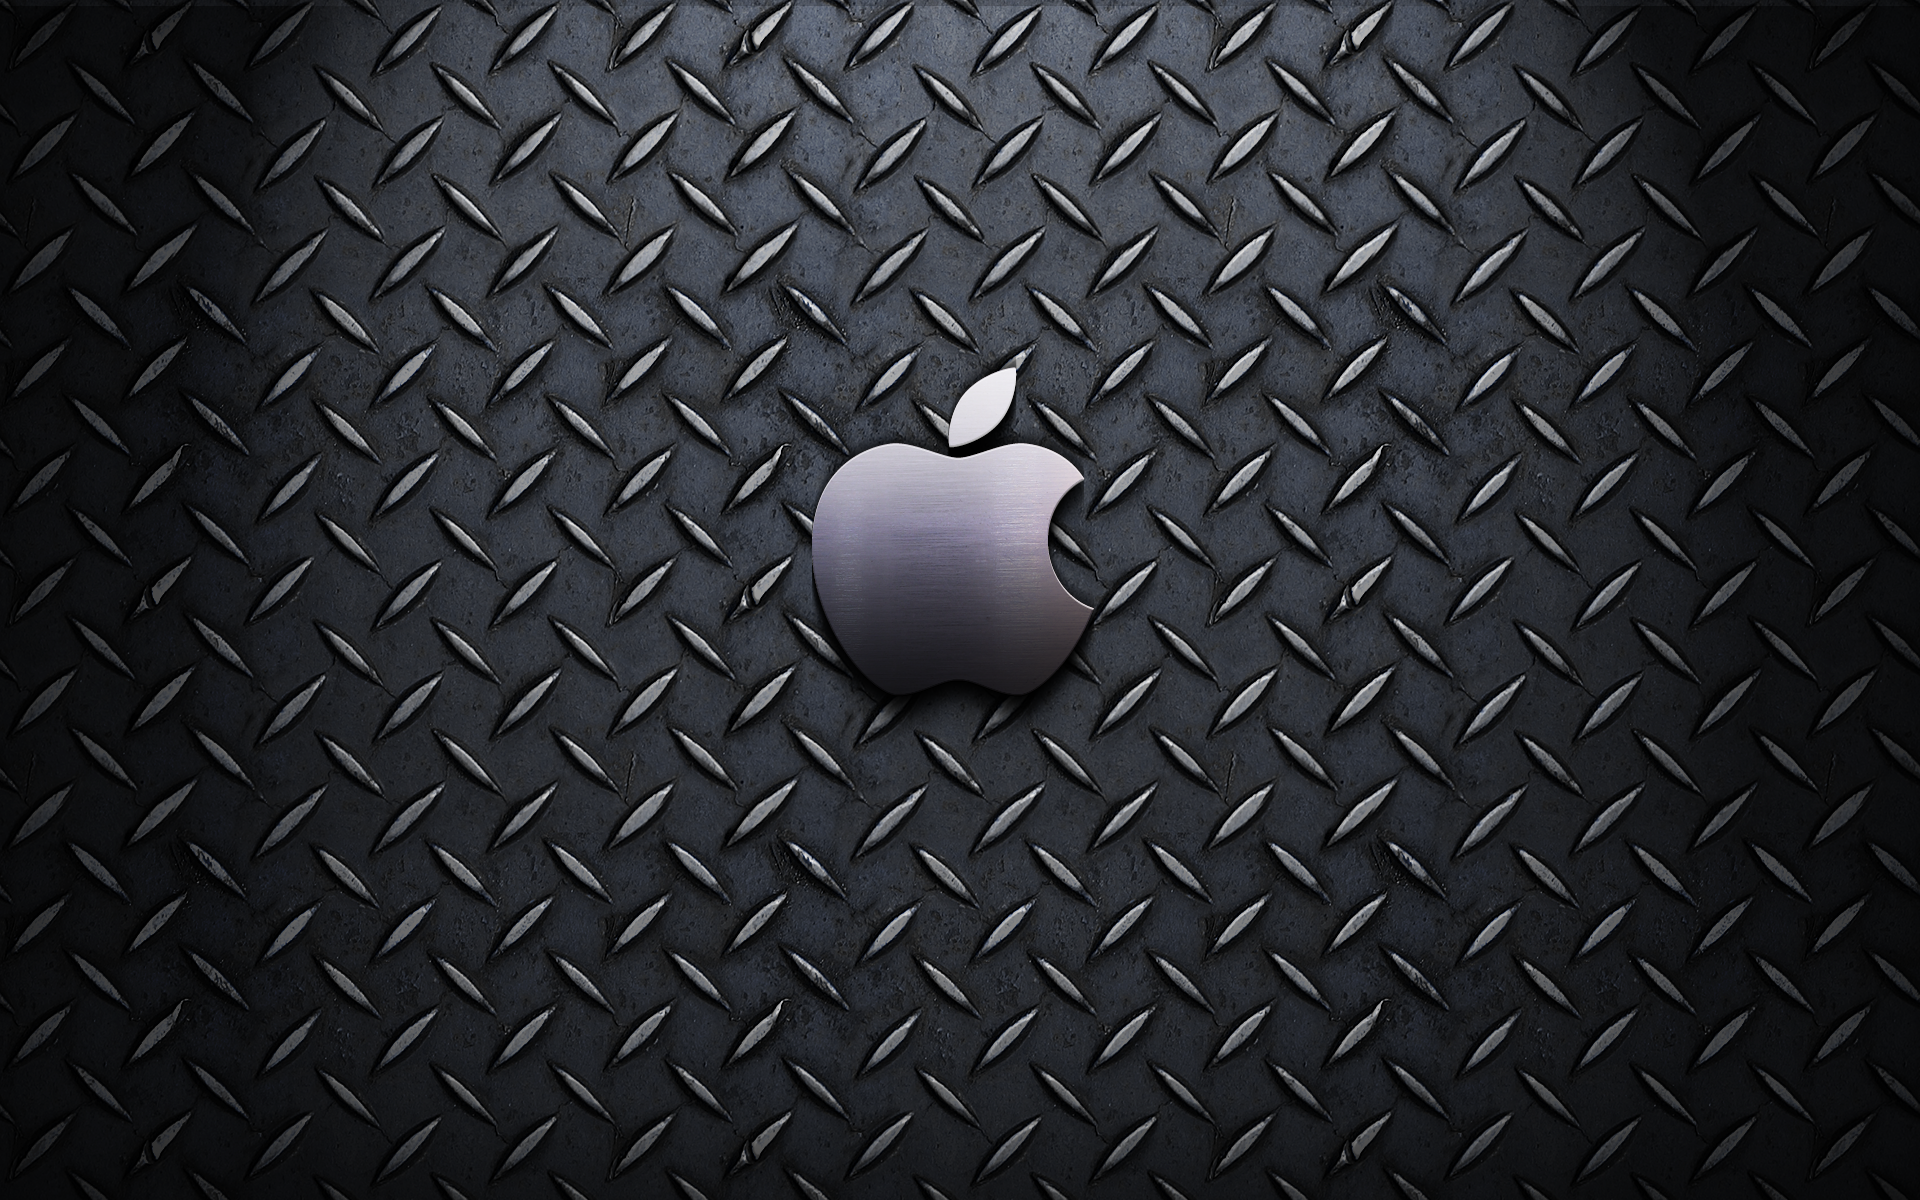 Apple Inc., Mac, steel, textures, logos - desktop wallpaper